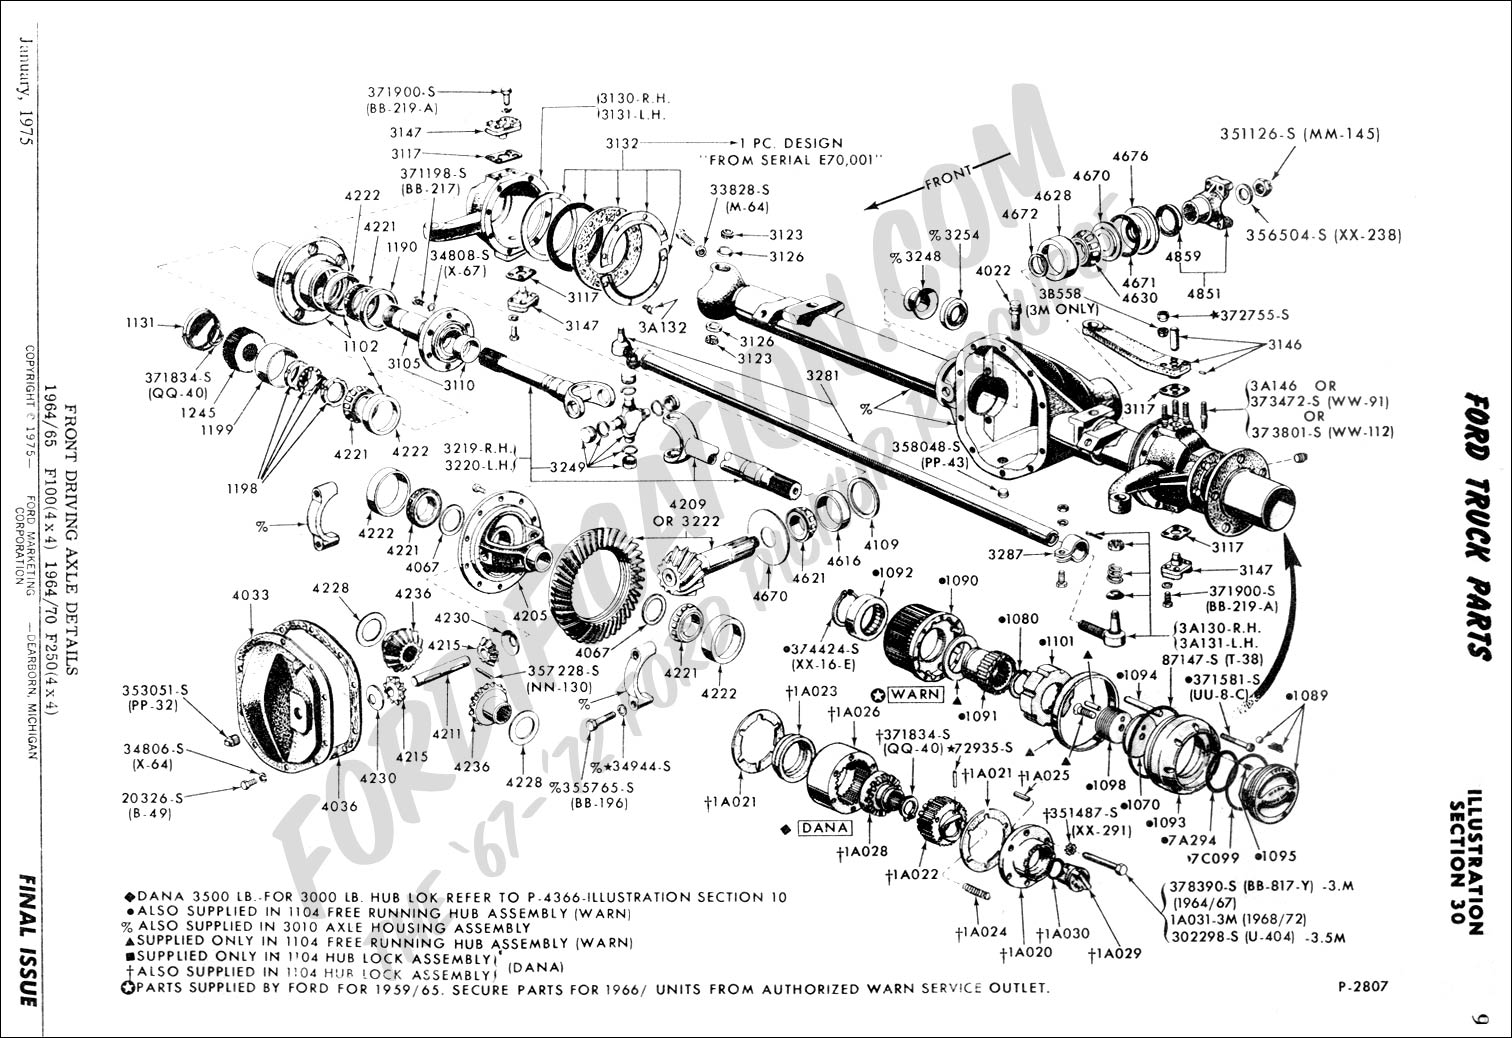 94 E250 Fuse Box Wiring Library 2002 Ford Excursion Engine Diagram Truck Technical Drawings And Schematics Section A 1994 4 9 93